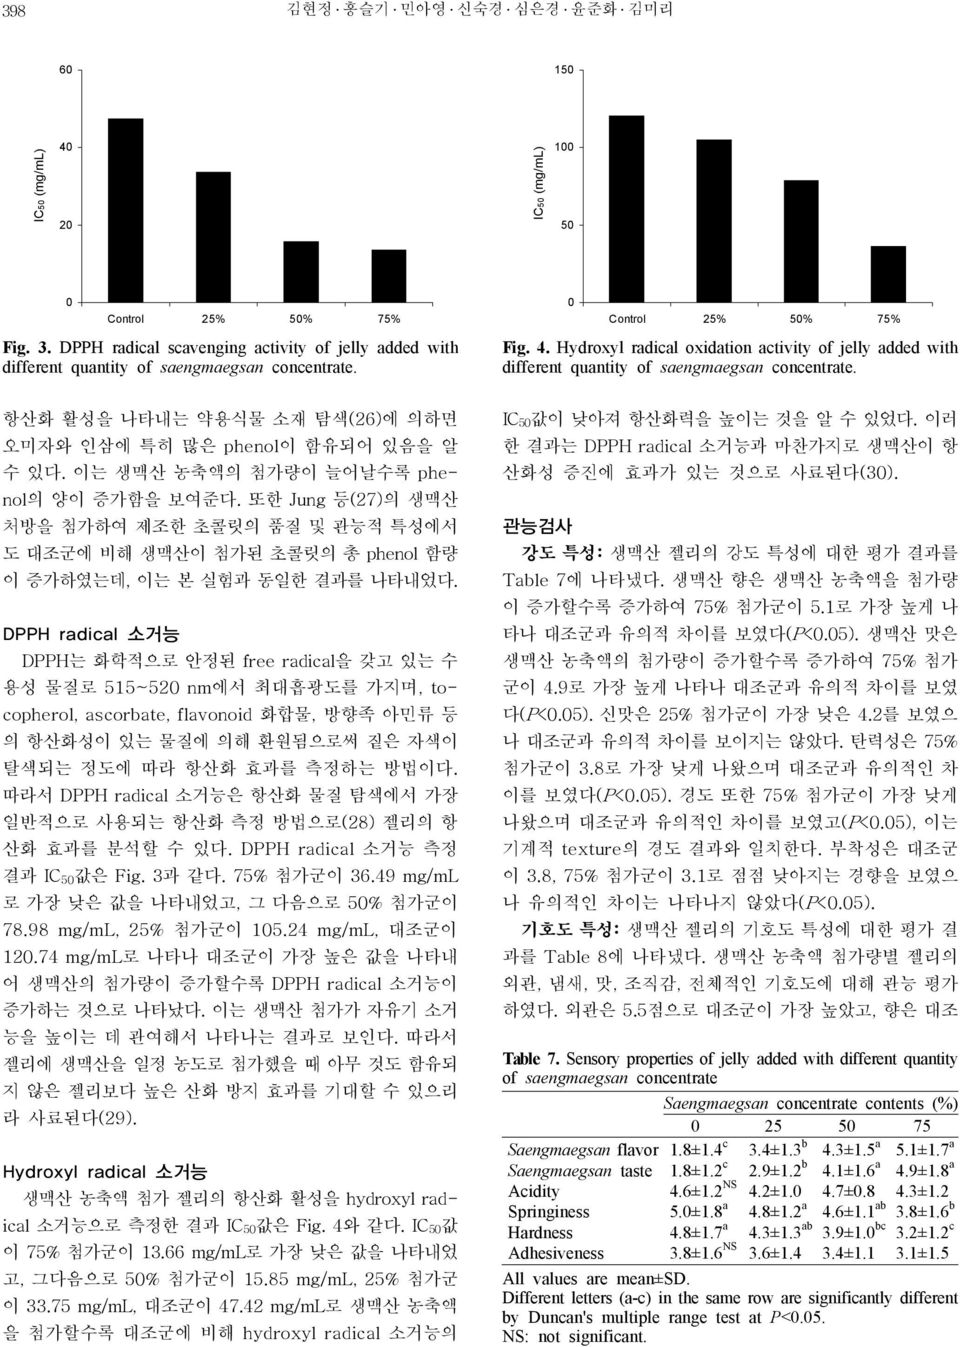 Hydroxyl radical oxidation activity of jelly added with different quantity of saengmaegsan concentrate. 항산화 활성을 나타내는 약용식물 소재 탐색(26)에 의하면 오미자와 인삼에 특히 많은 phenol이 함유되어 있음을 알 수 있다.